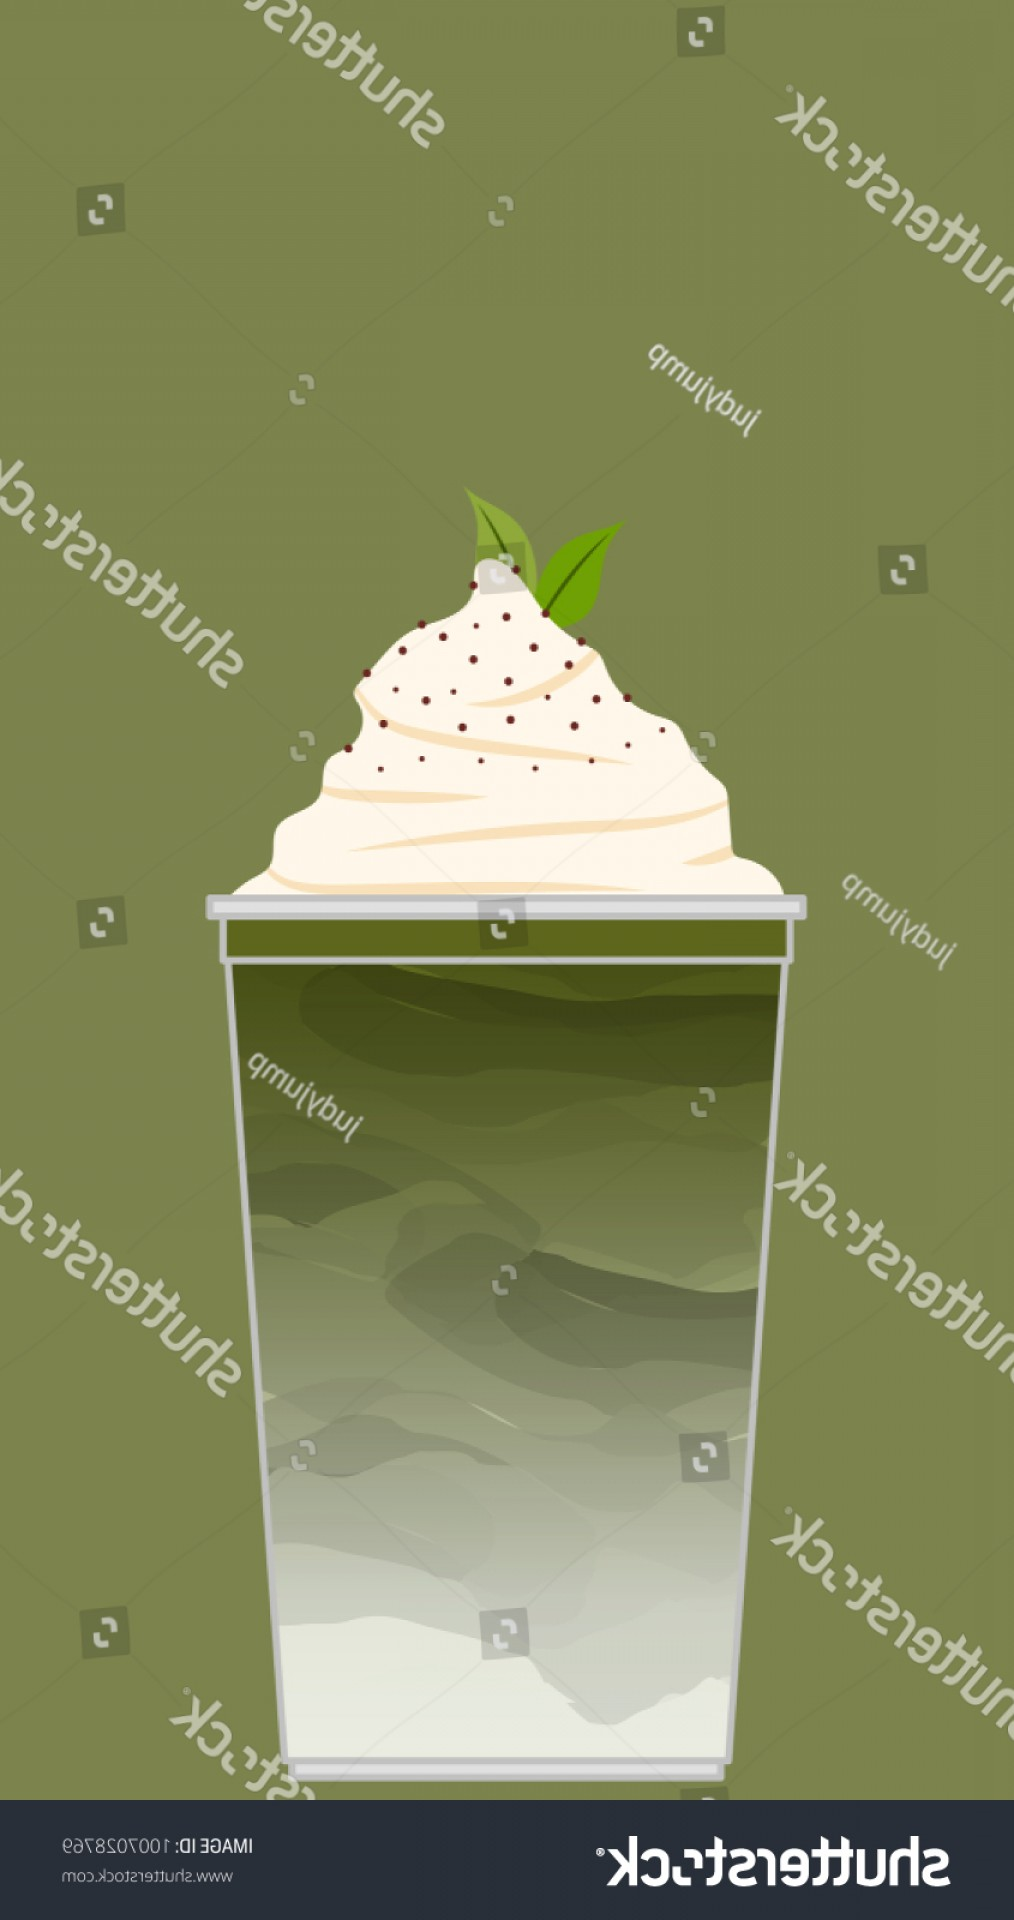 Snow Cone Vector Free: Green Tea Milk Vector Free Space